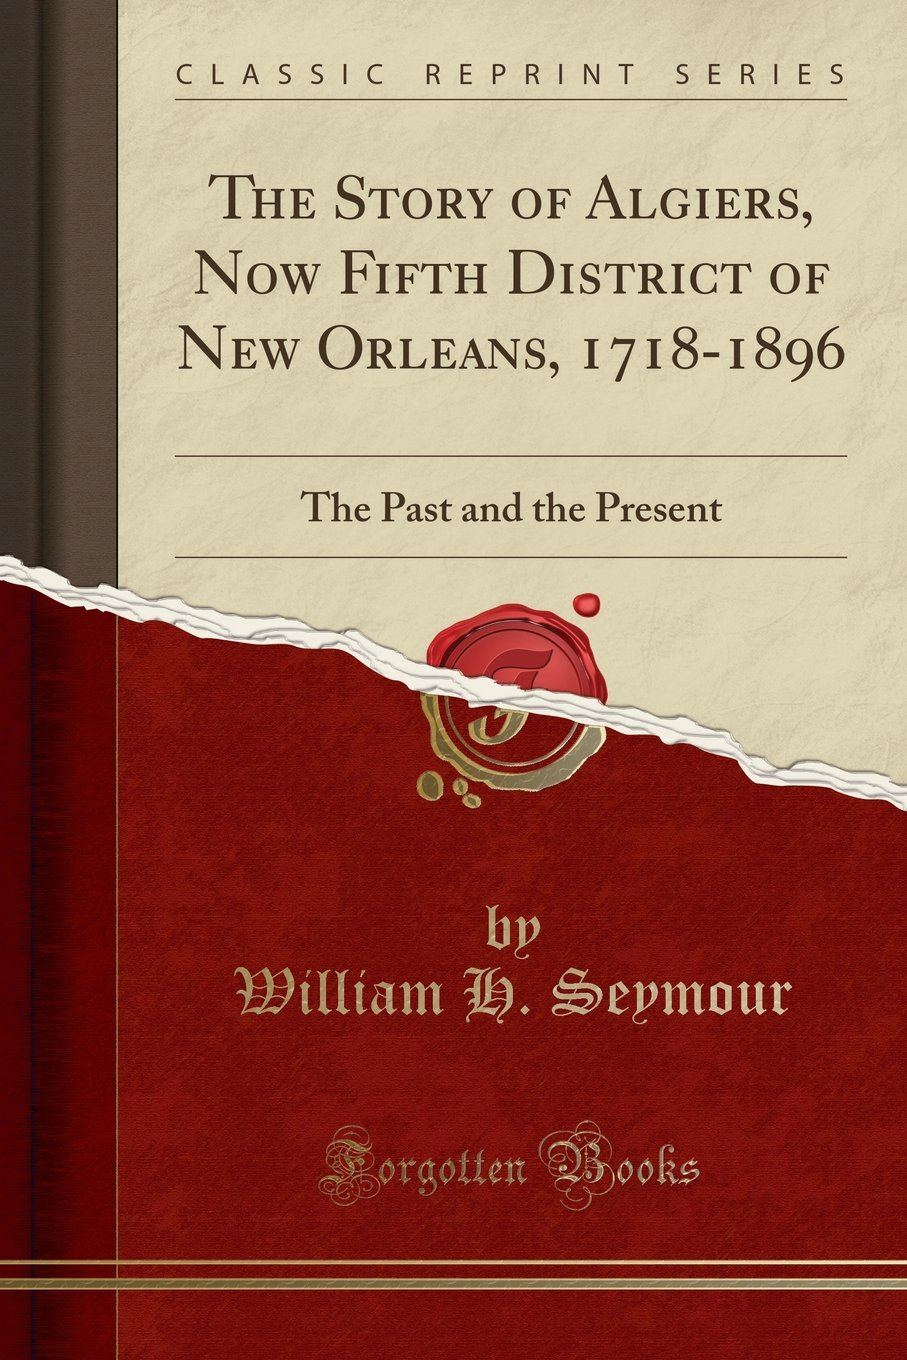 The Story of Algiers, Now Fifth District of New Orleans, 1718-1896: The Past and the Present (Classic Reprint)